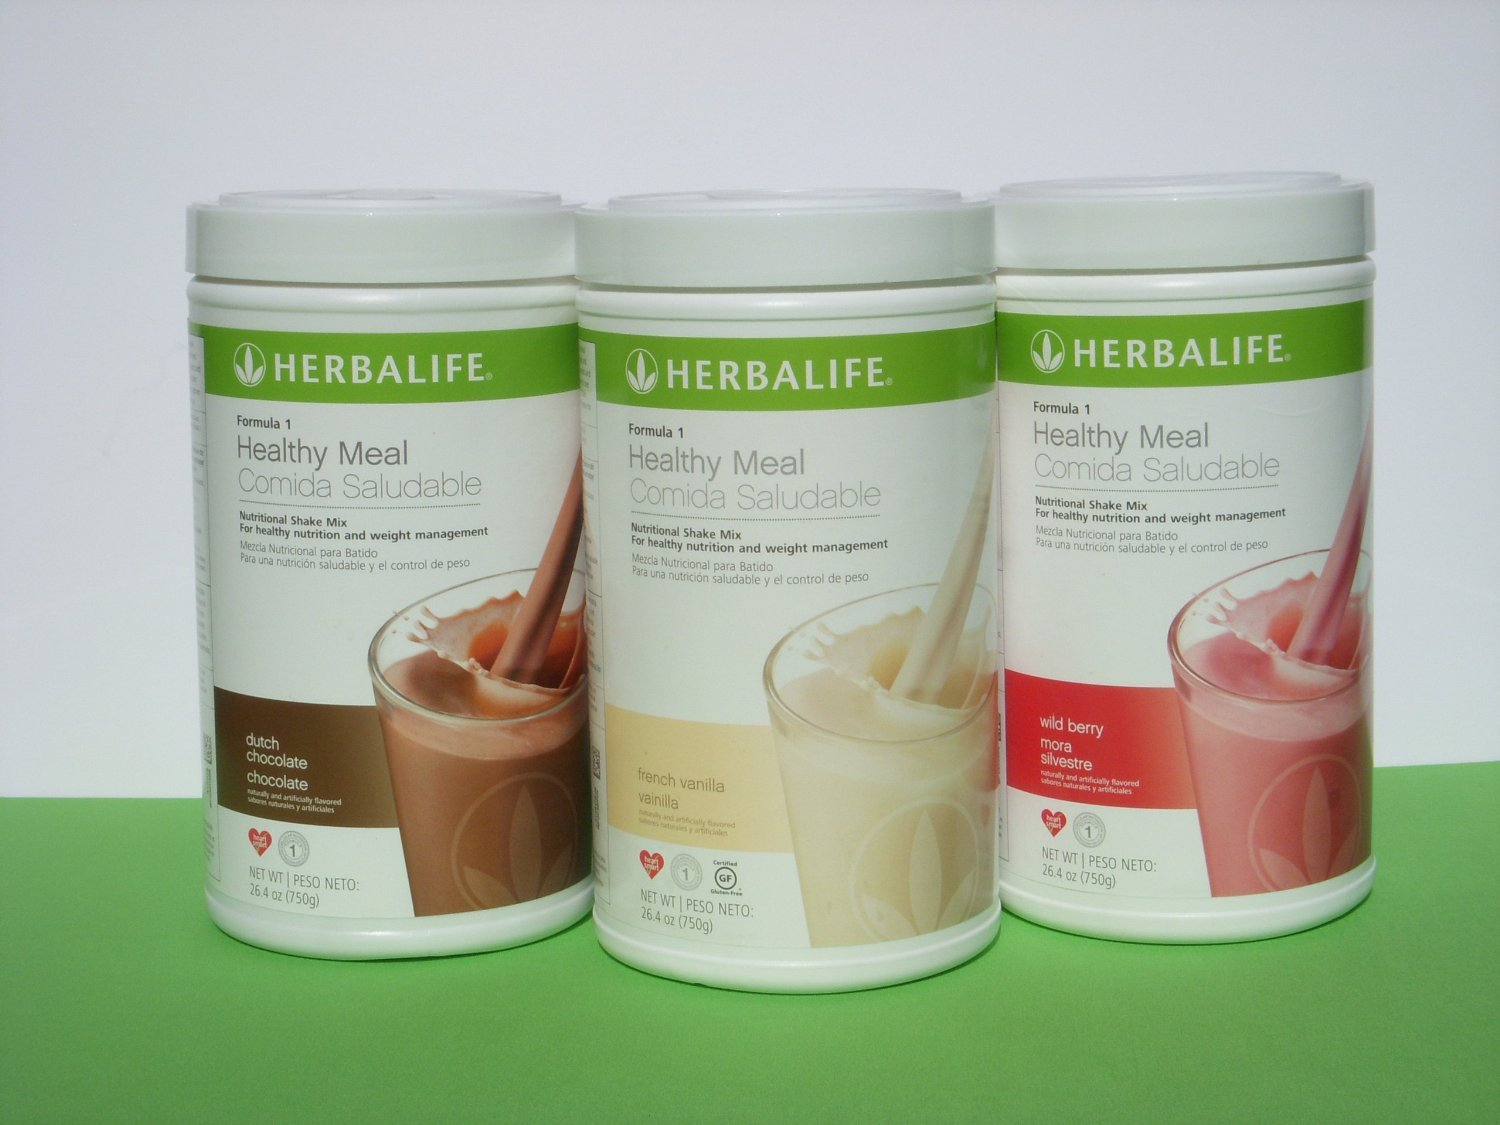 Amazon.com: 4 Nos Can of Herbalife Formula 1 Nutrition Shake Mix All Flavors :: French Vanilla, Kosher (Vanilla), Cafe Latte, Piña Colada, Cookies n Cream, ...